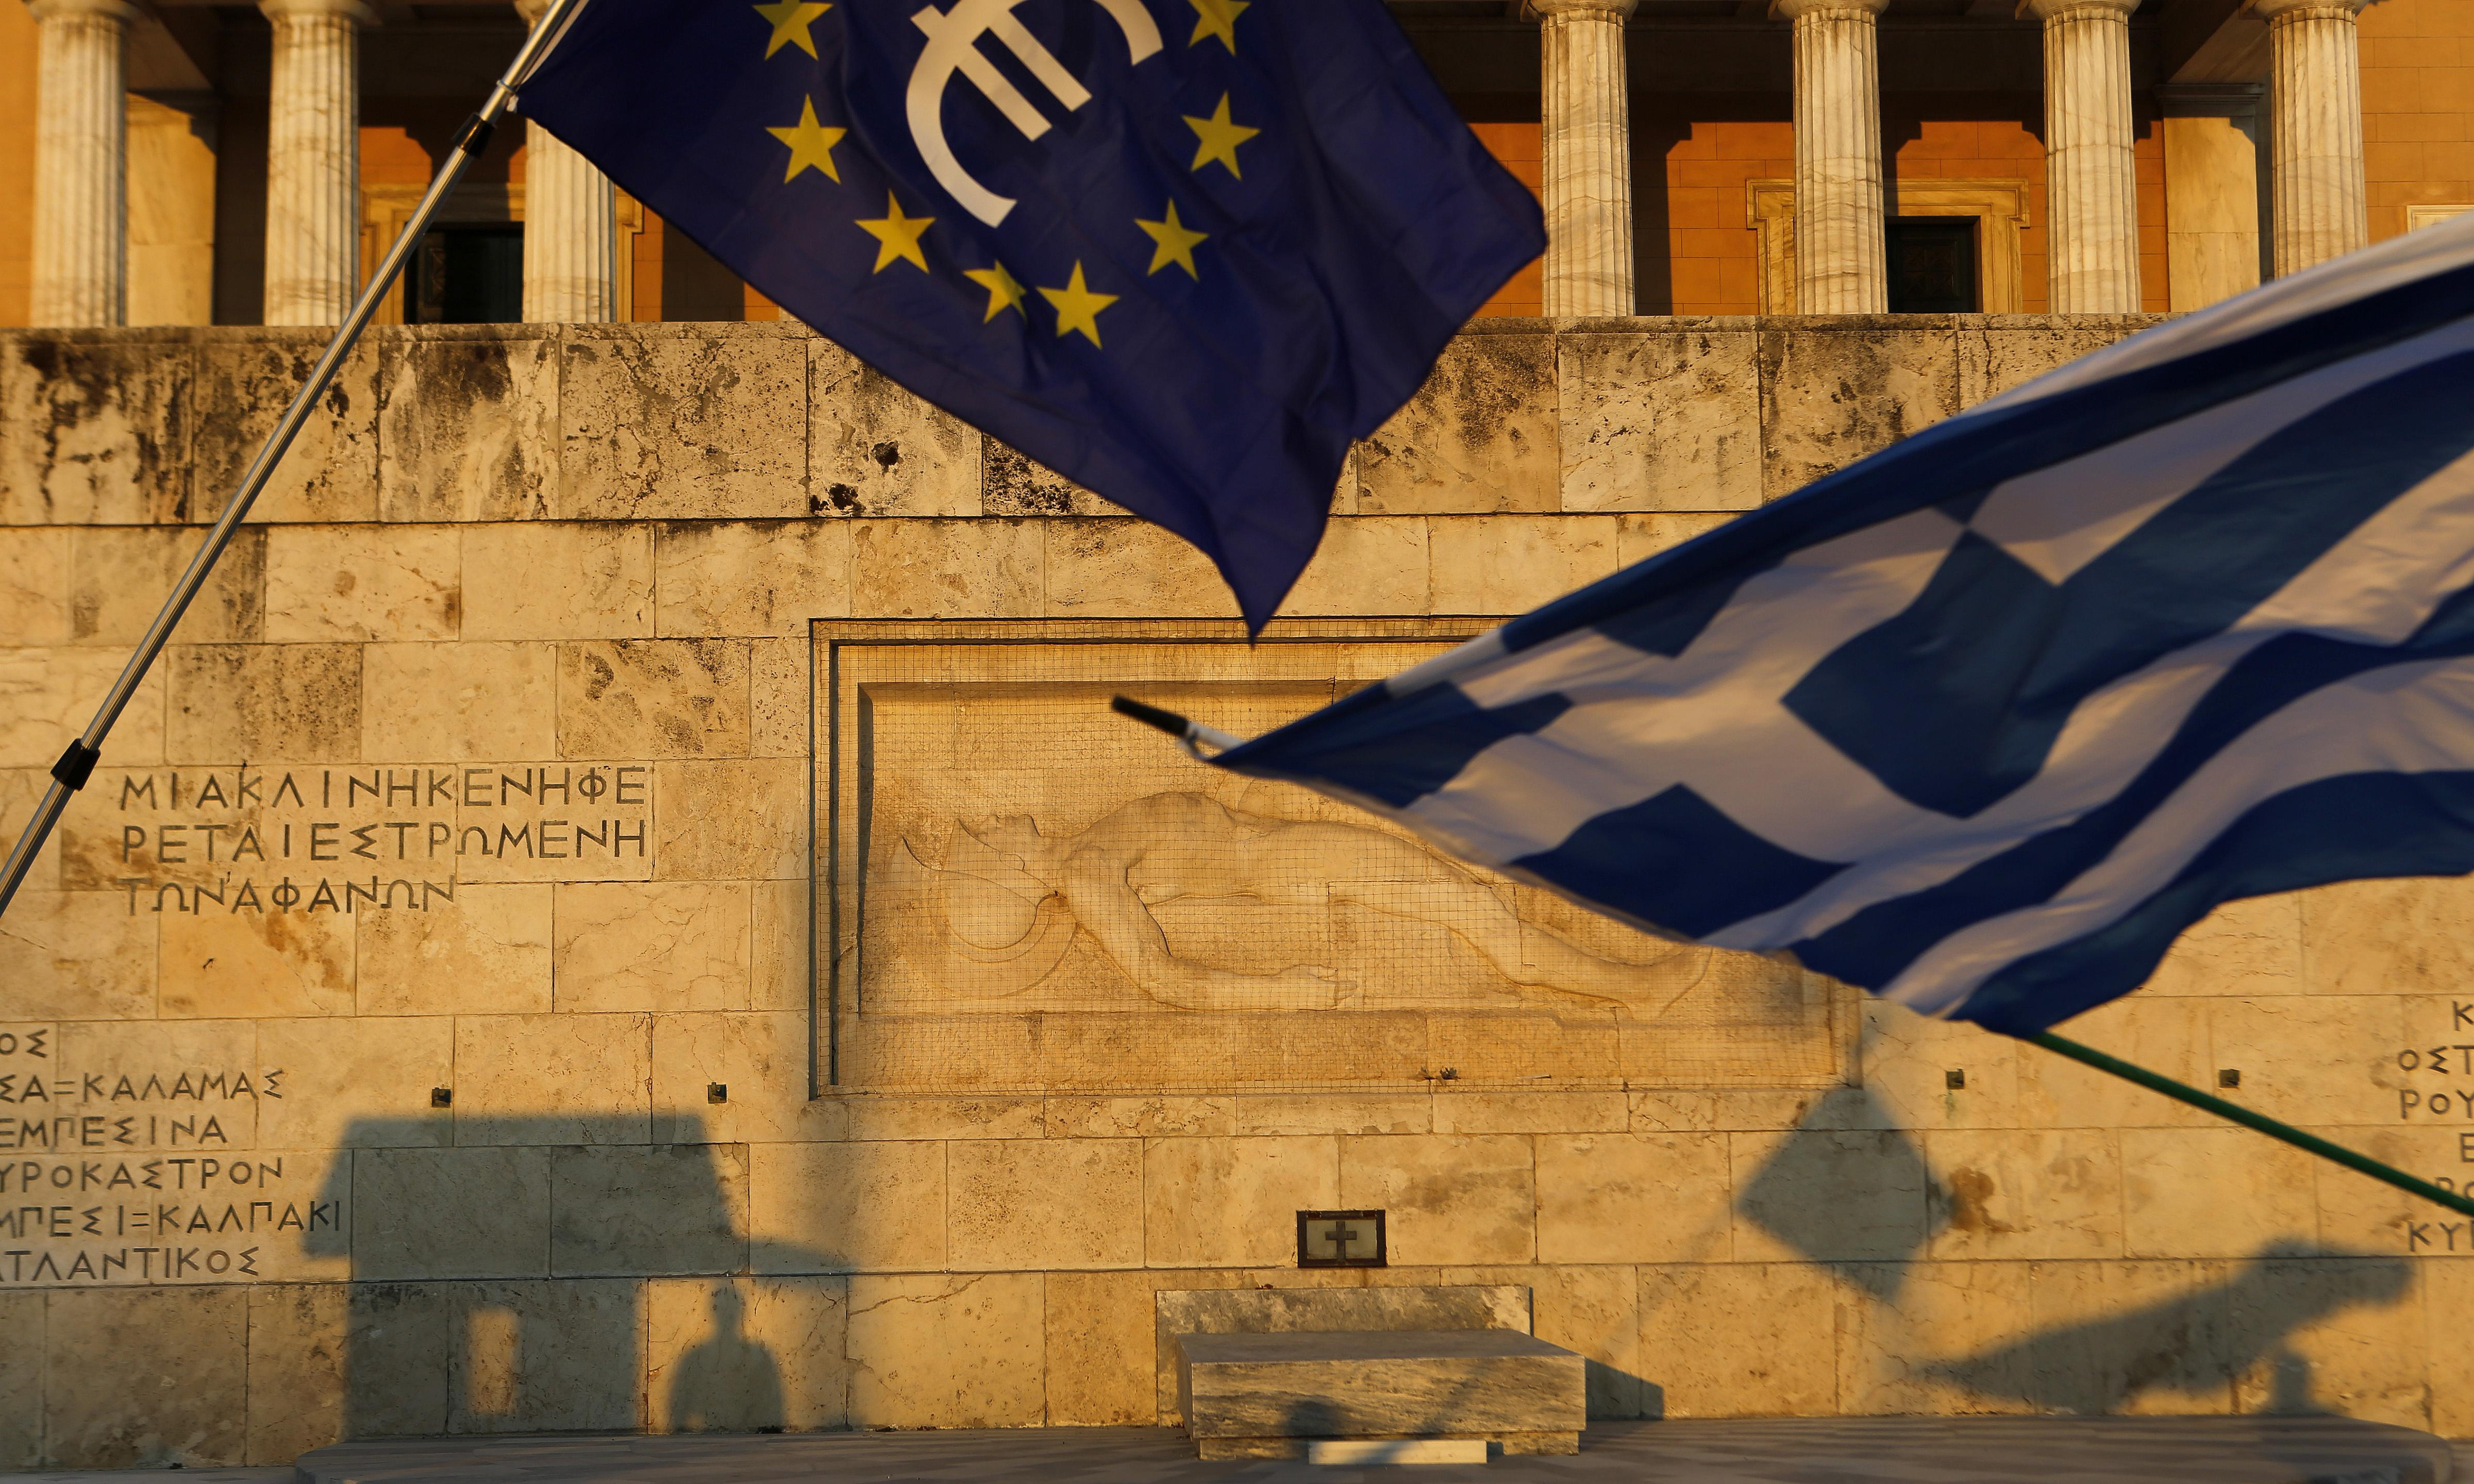 Greece, the eurozone crisis and the case against fiscal discipline